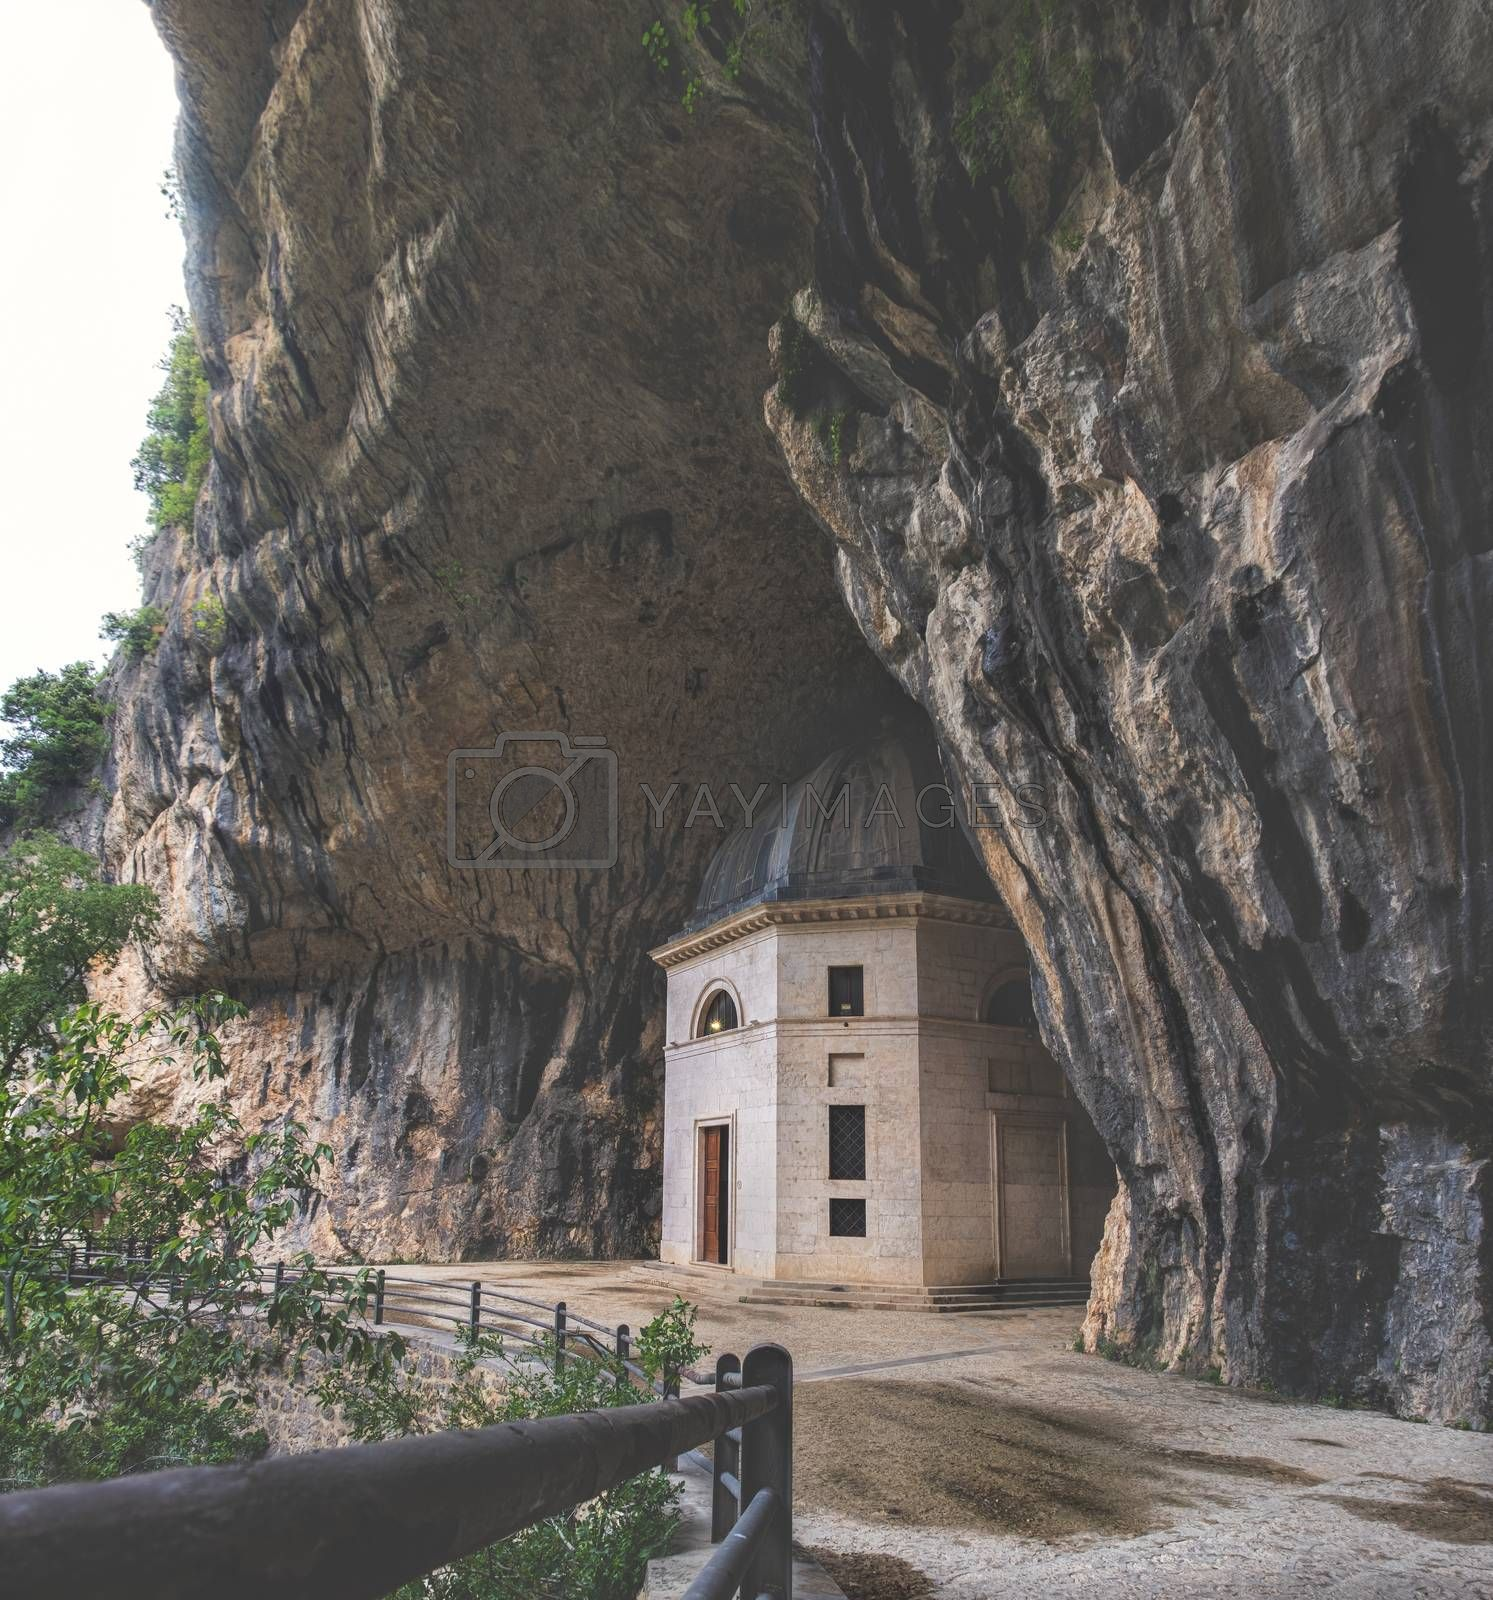 church inside cave - Italy - Marche - Valadier temple church near Frasassi caves in Genga Ancona .